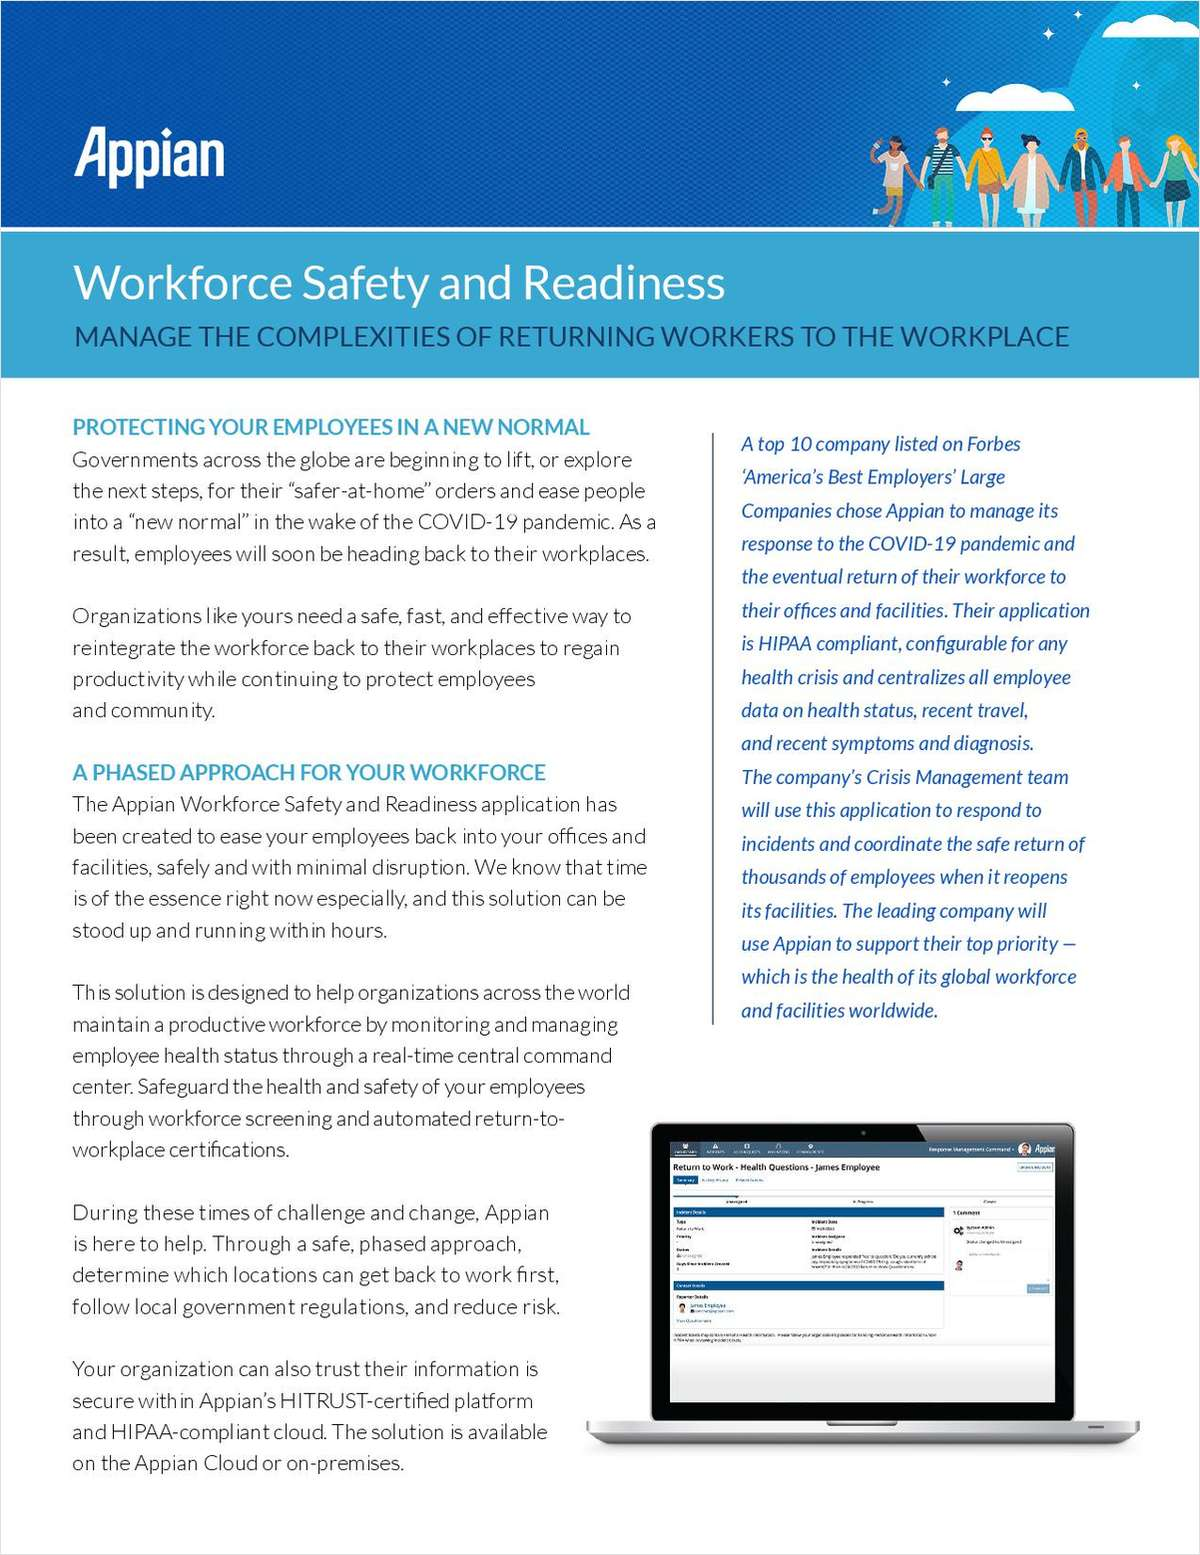 Workforce Safety and Readiness: Manage the Complexities of Returning Workers to the Workplace